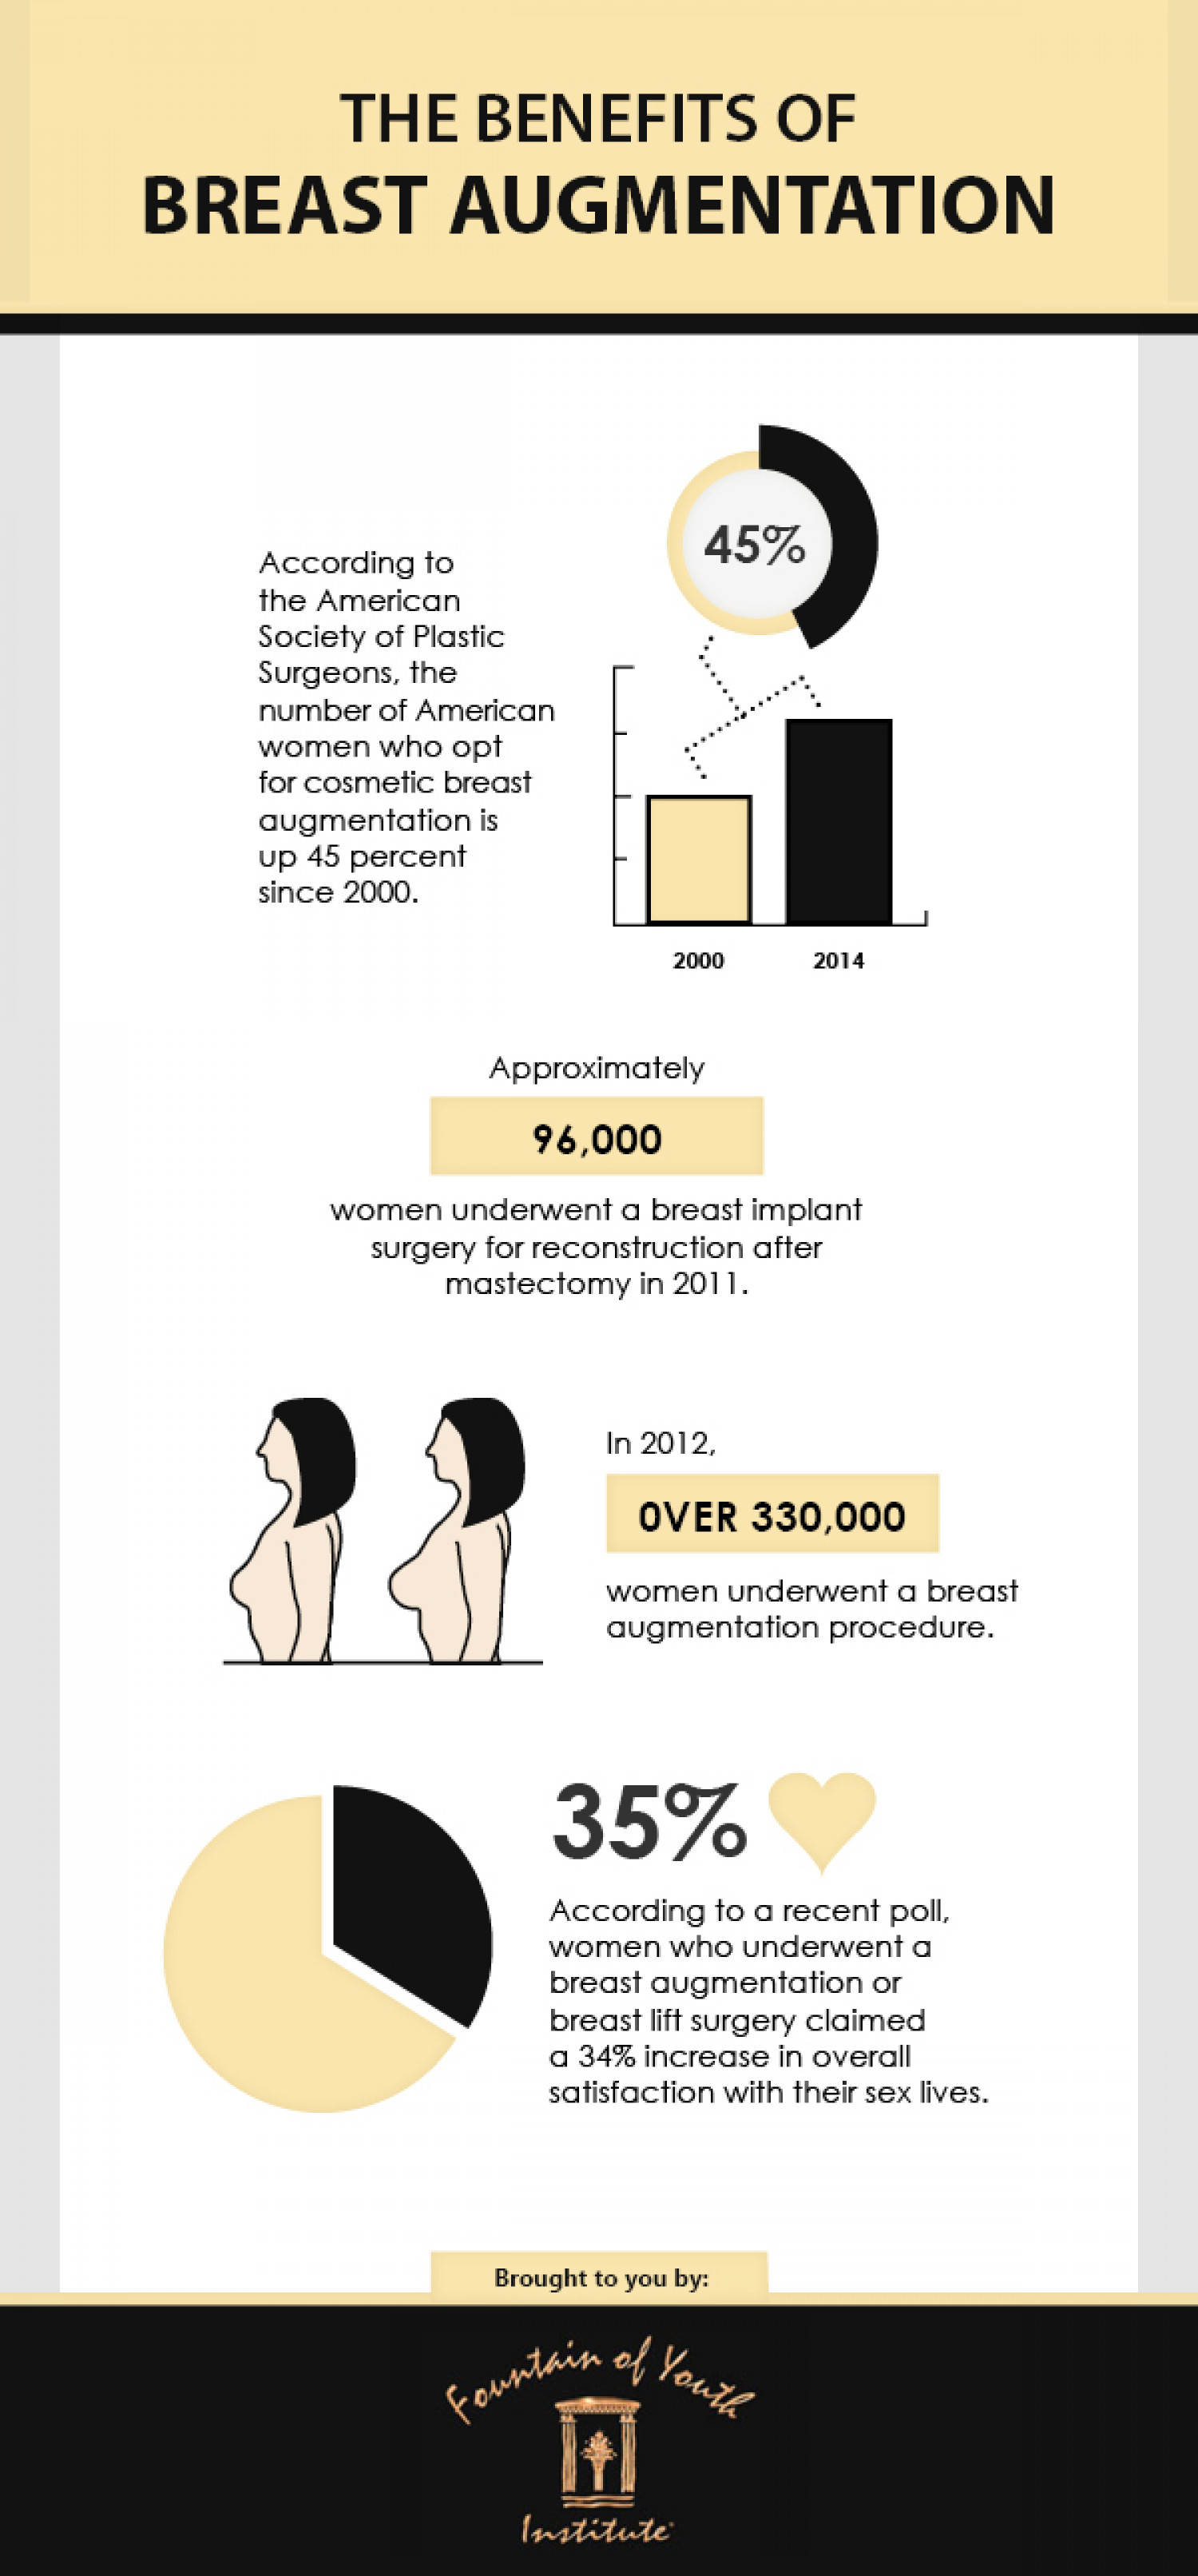 The Benefits of Breast Augmentation Infographic